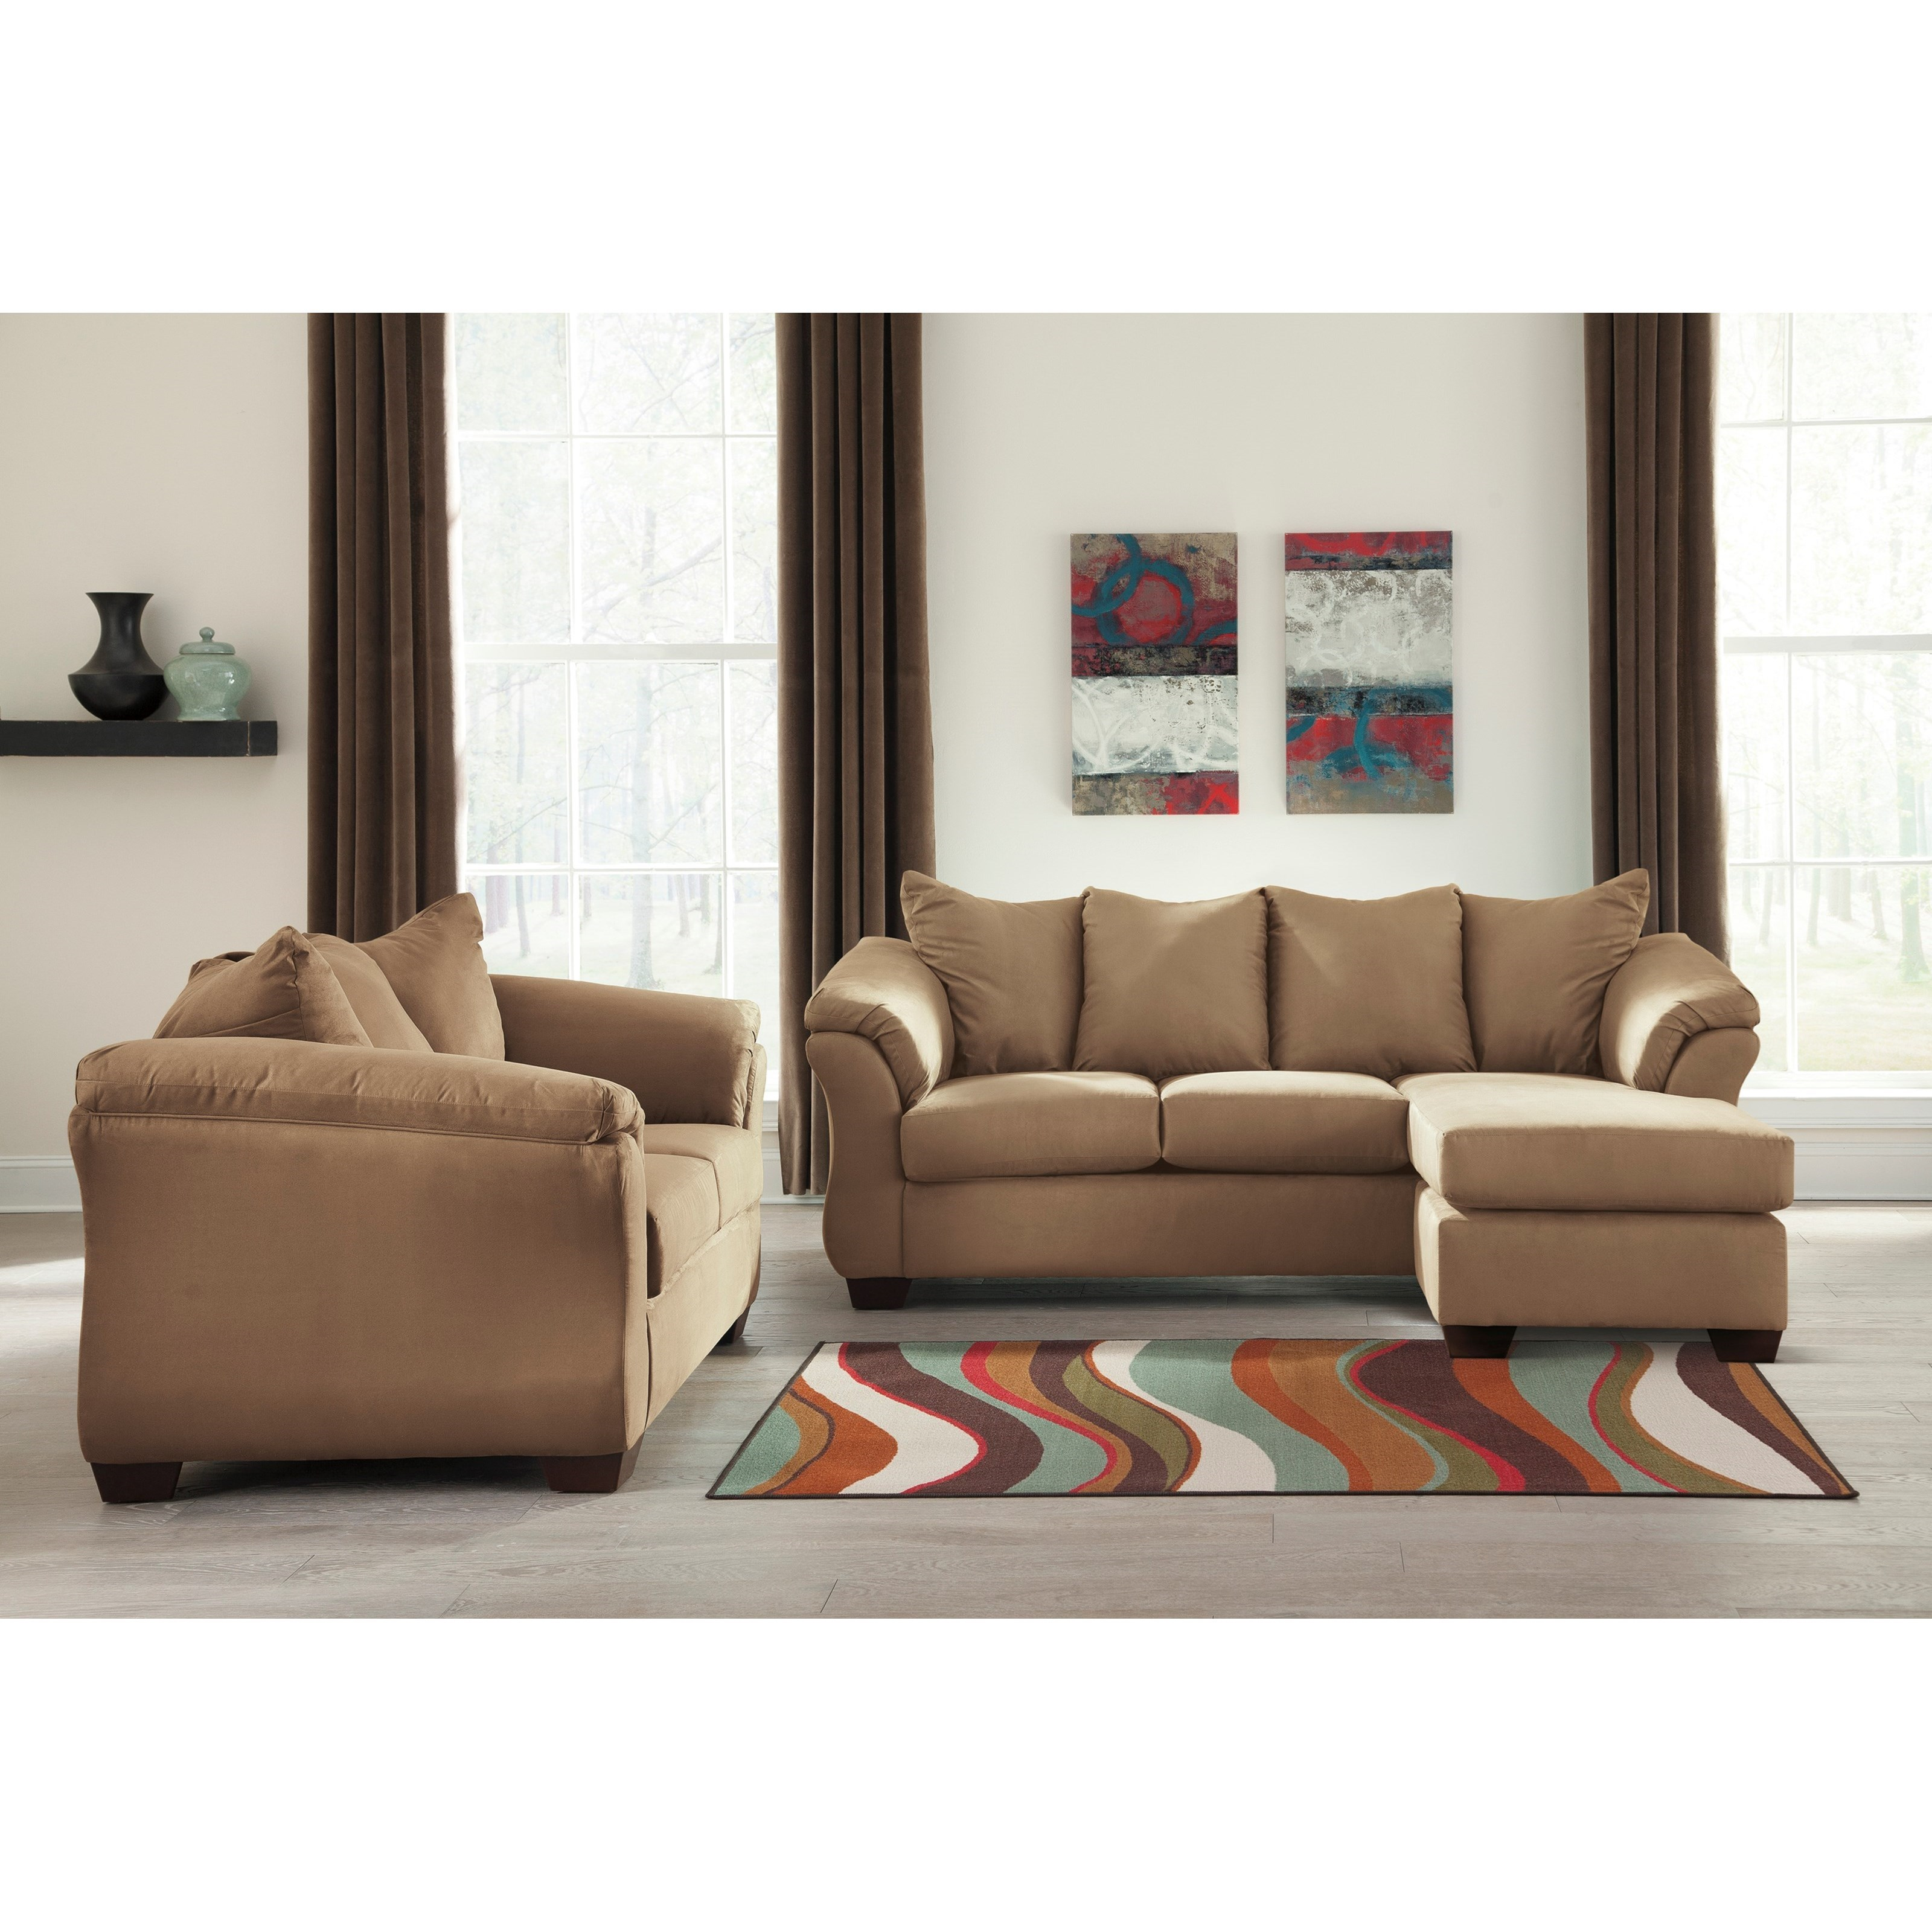 Darcy - Mocha Stationary Living Room Group by Signature Design by Ashley at Furniture Barn